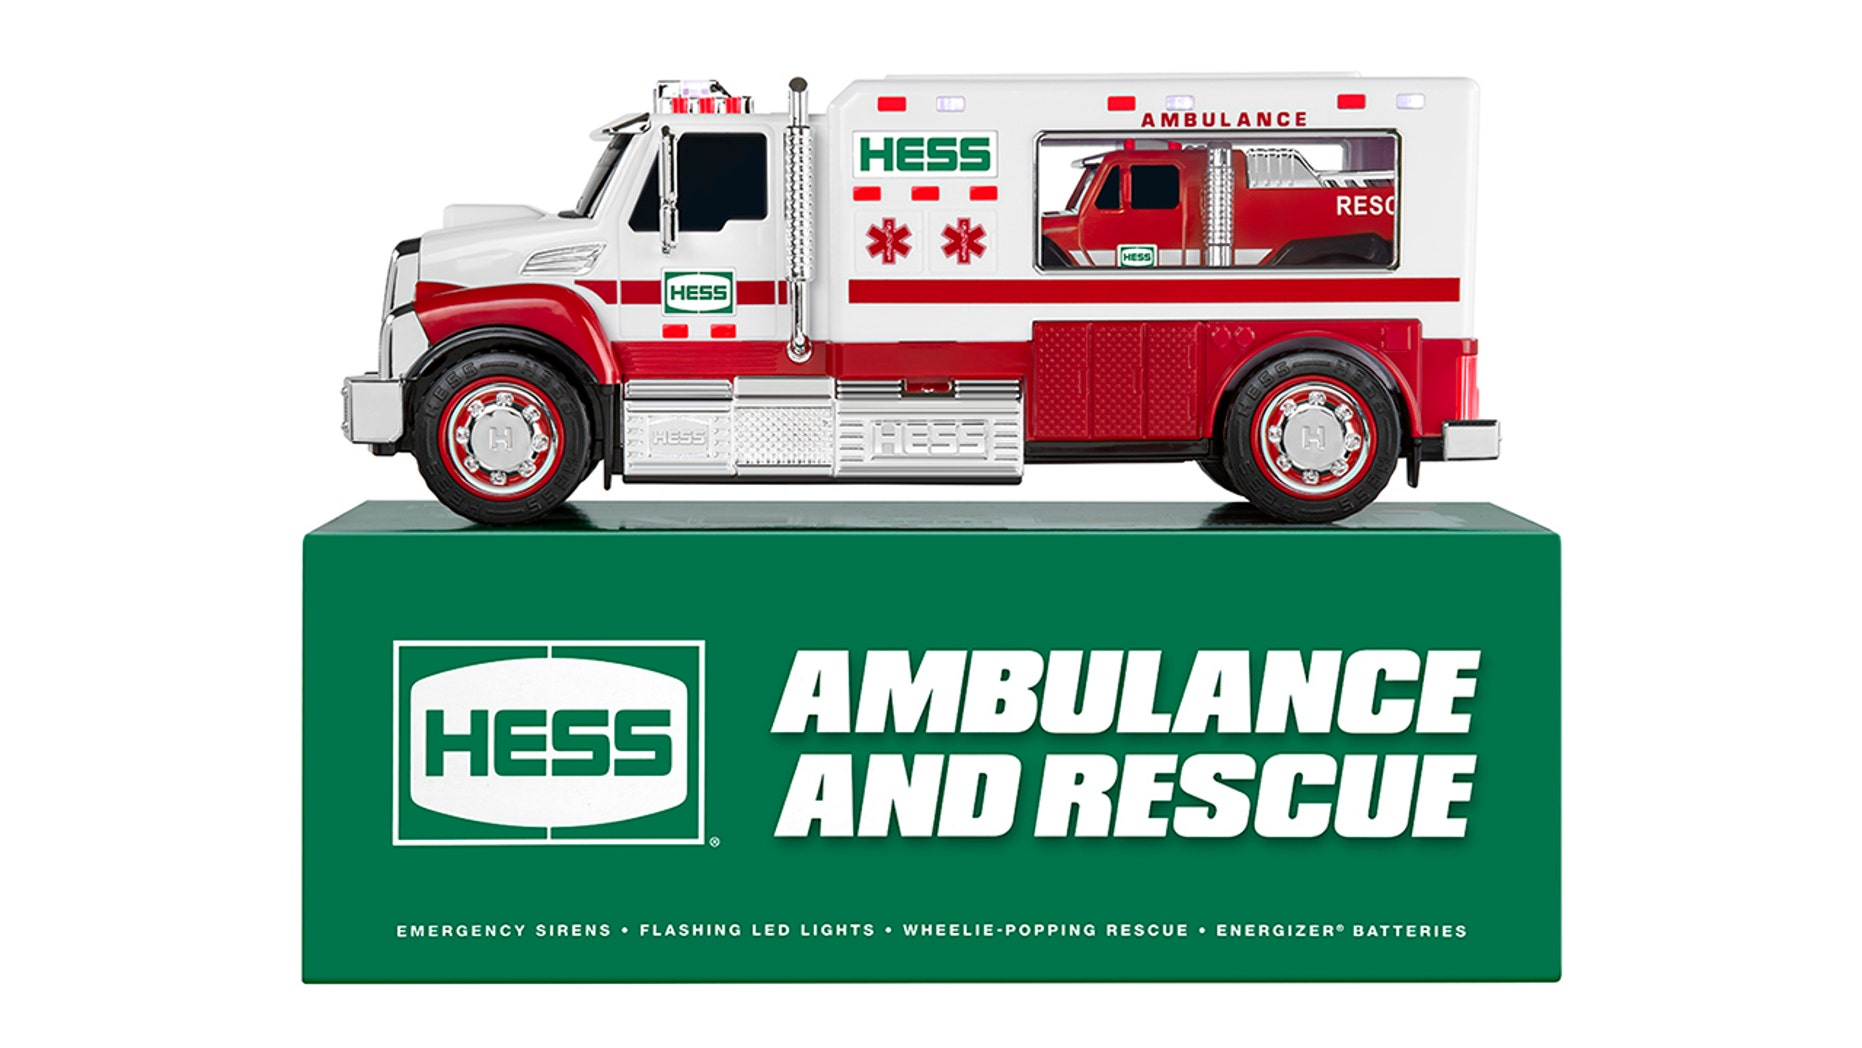 Hess holiday truck